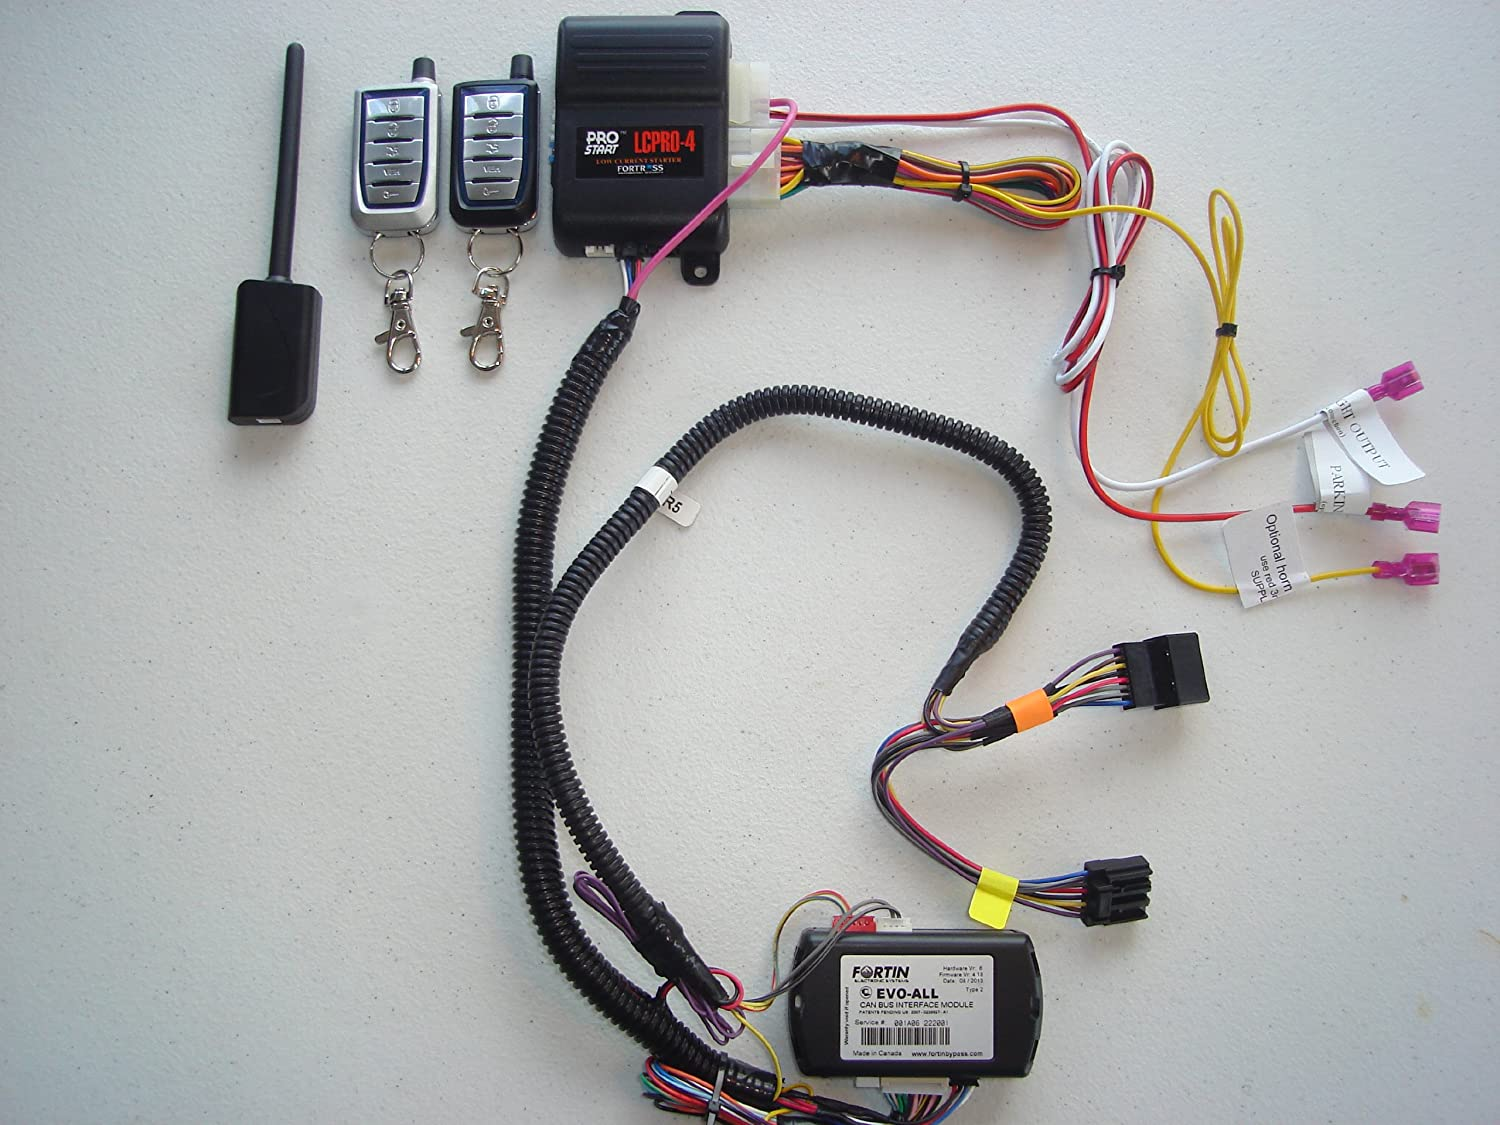 Remote Starter Kit W Keyless Entry For Jeep Liberty 2002 Wiring True Plug Play Installation Car Electronics